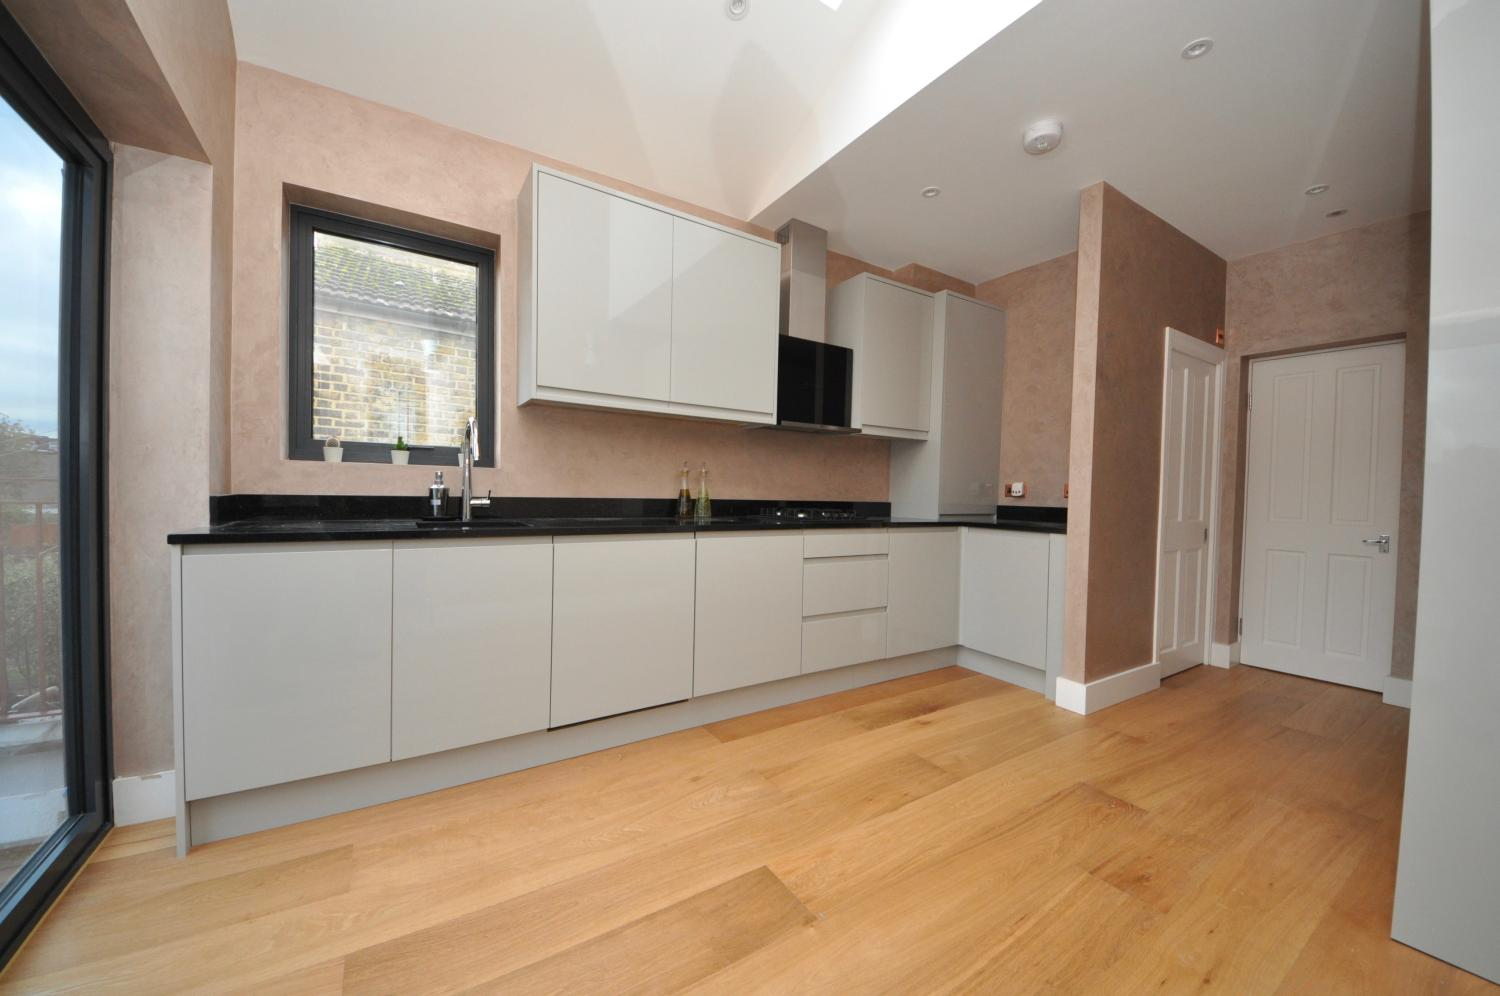 Kitchen Extension In Collieru0027s Wood South West London